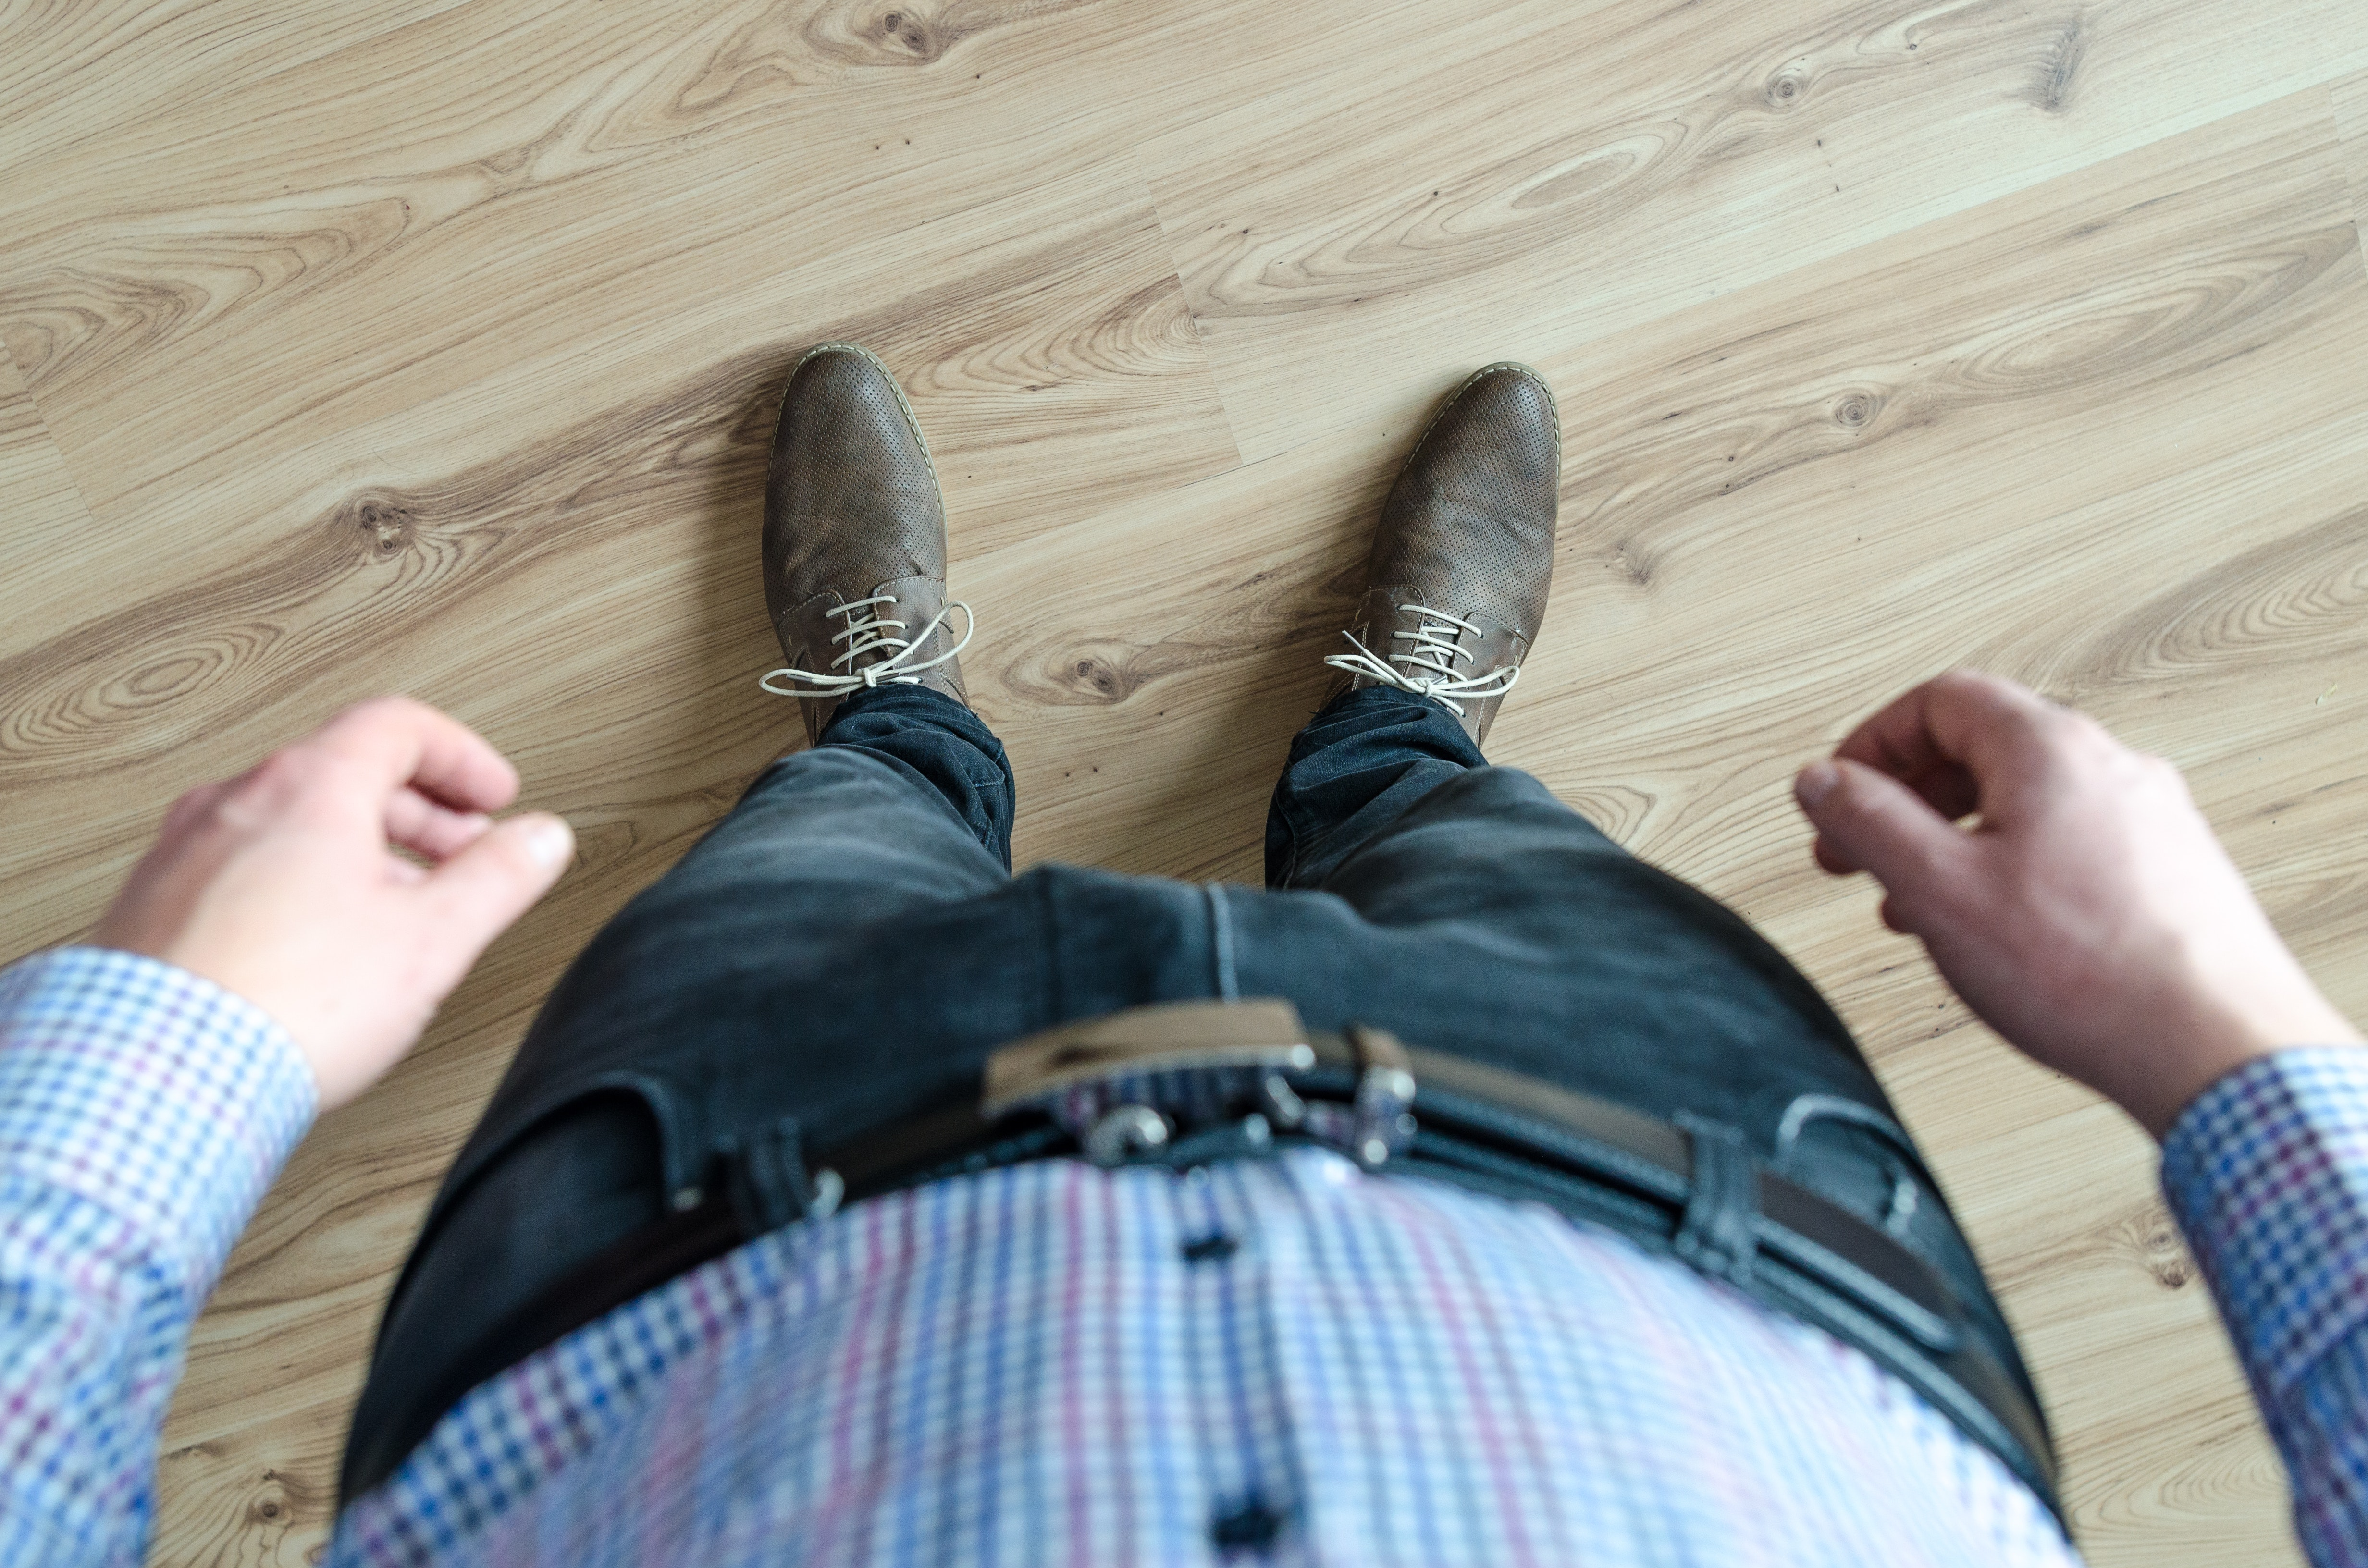 Person Wearing Black Jeans While Standing, Adult, Male, Work, Wear, HQ Photo